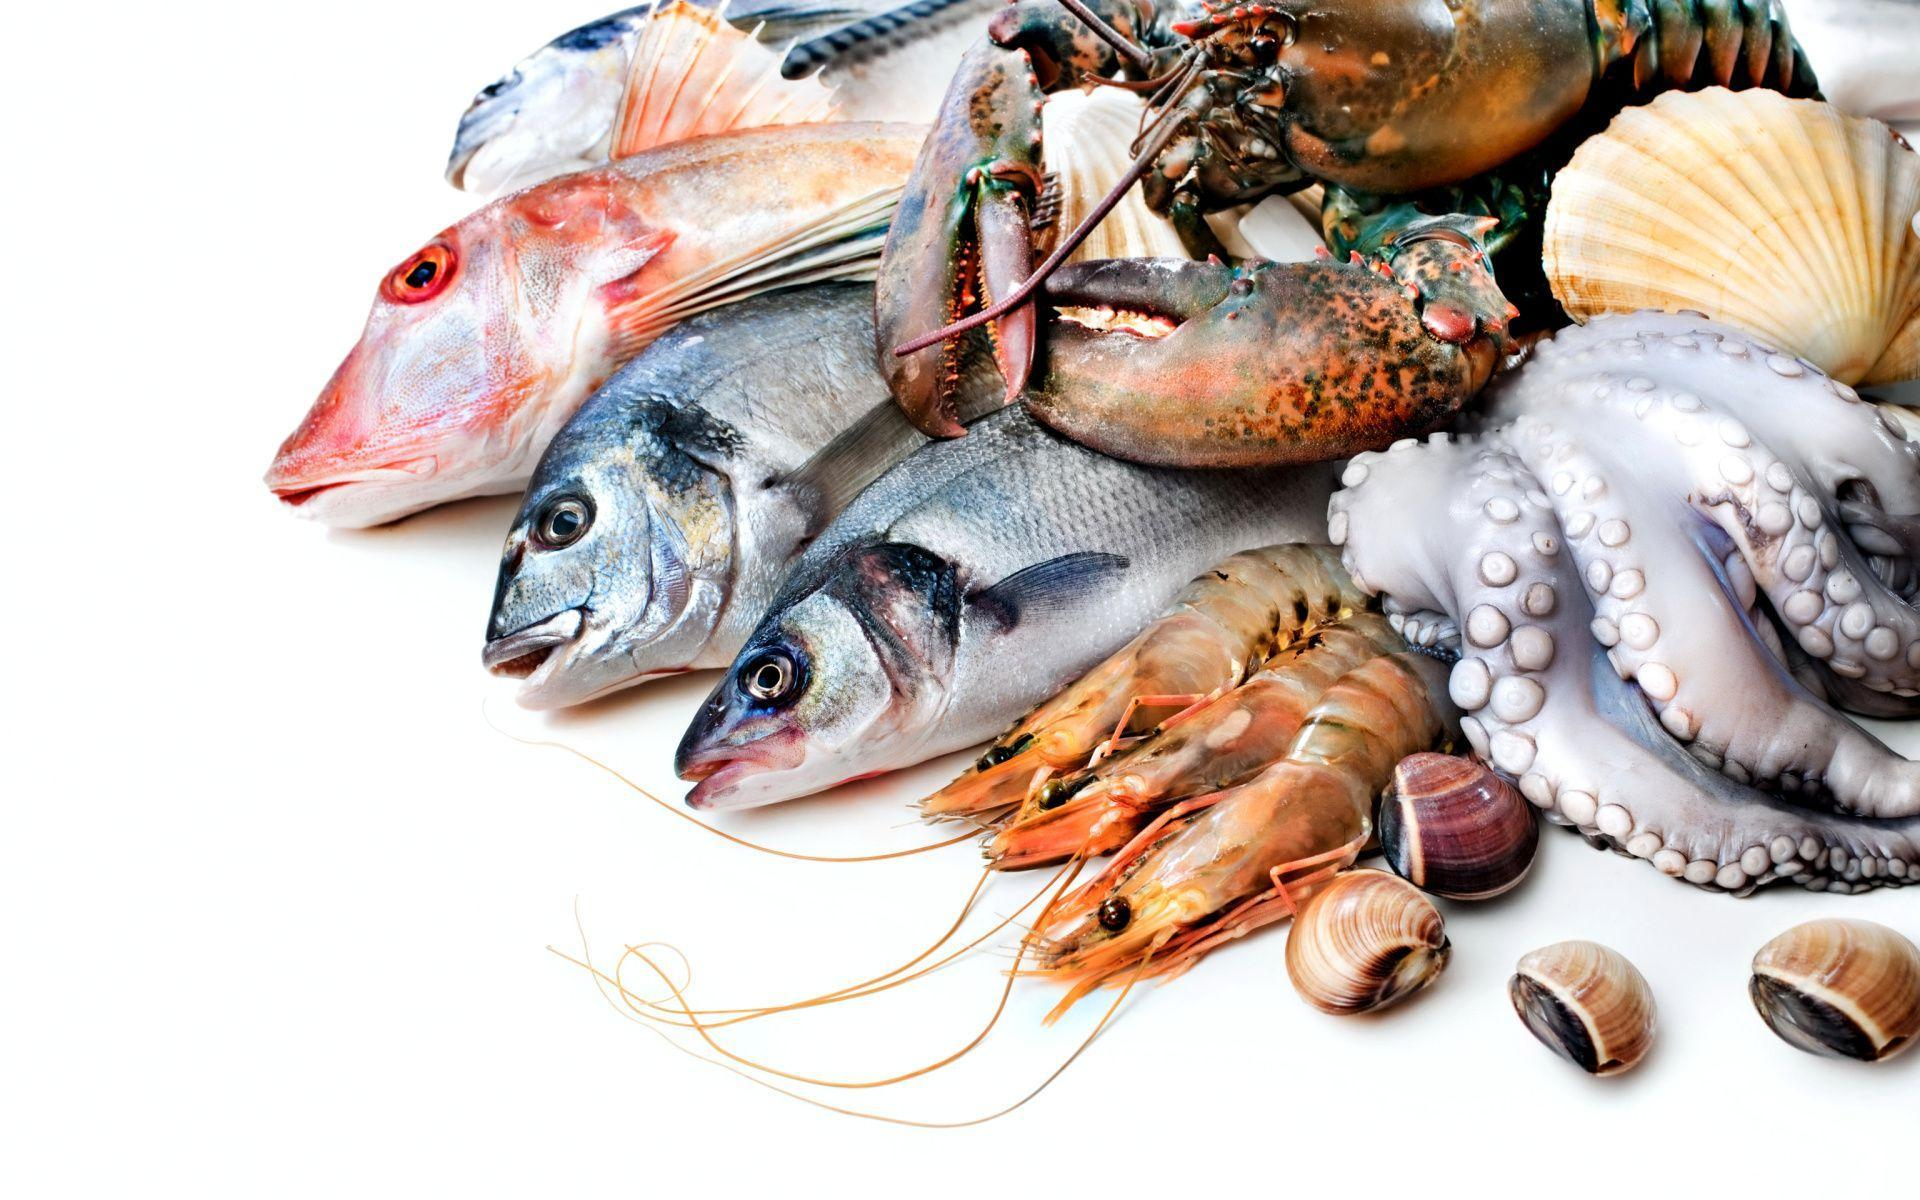 Seafood Wallpapers for Widescreen Desktop PC 1920x1080 Full HD